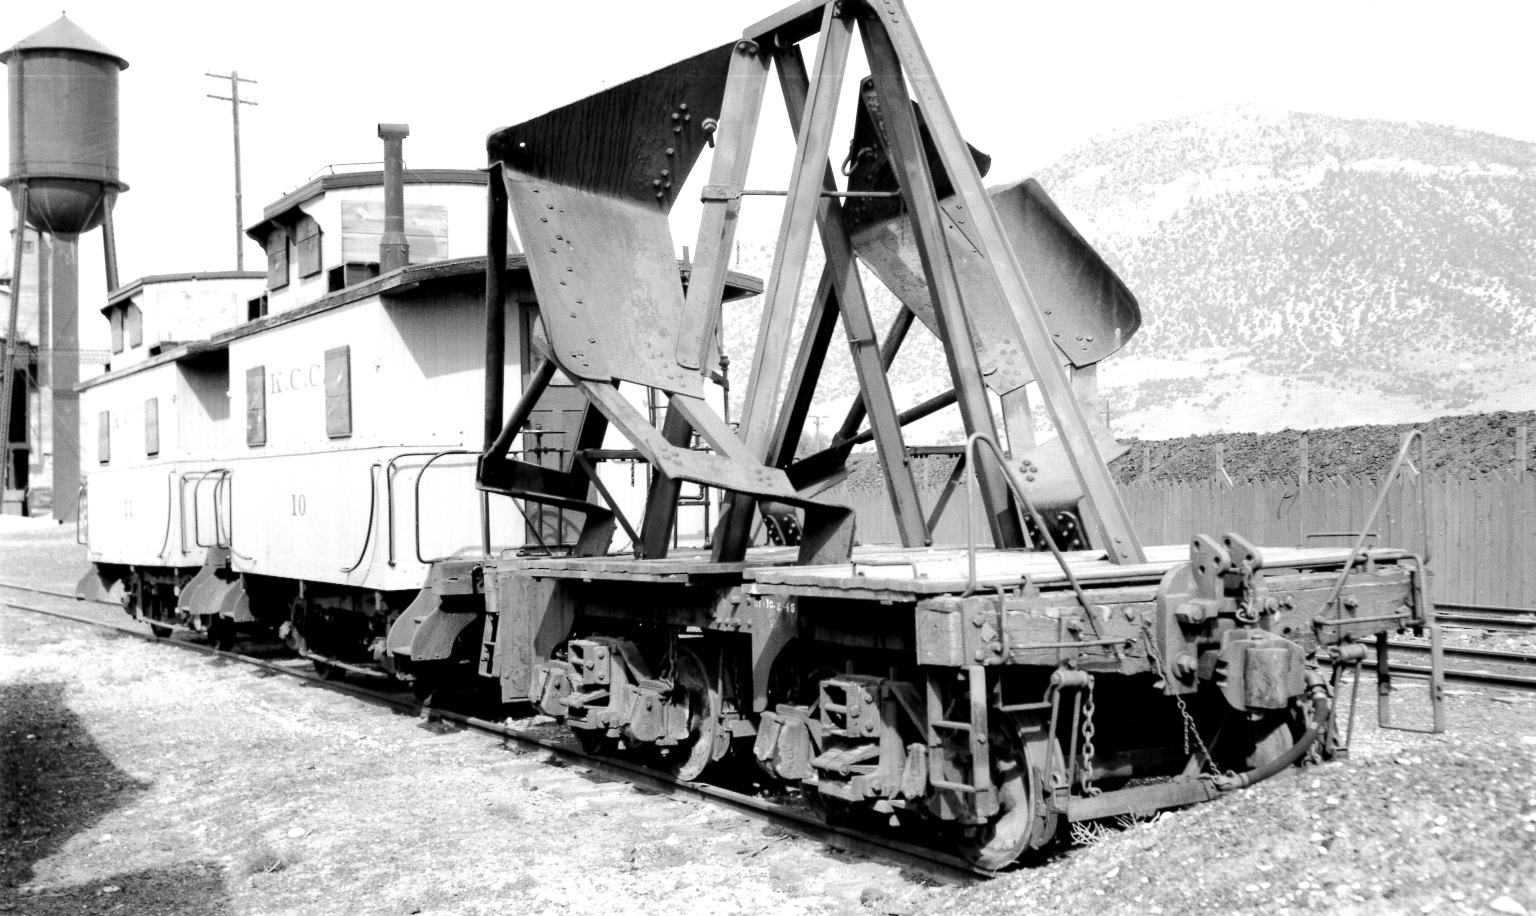 Ballast Spreader and Bobber Cabooses